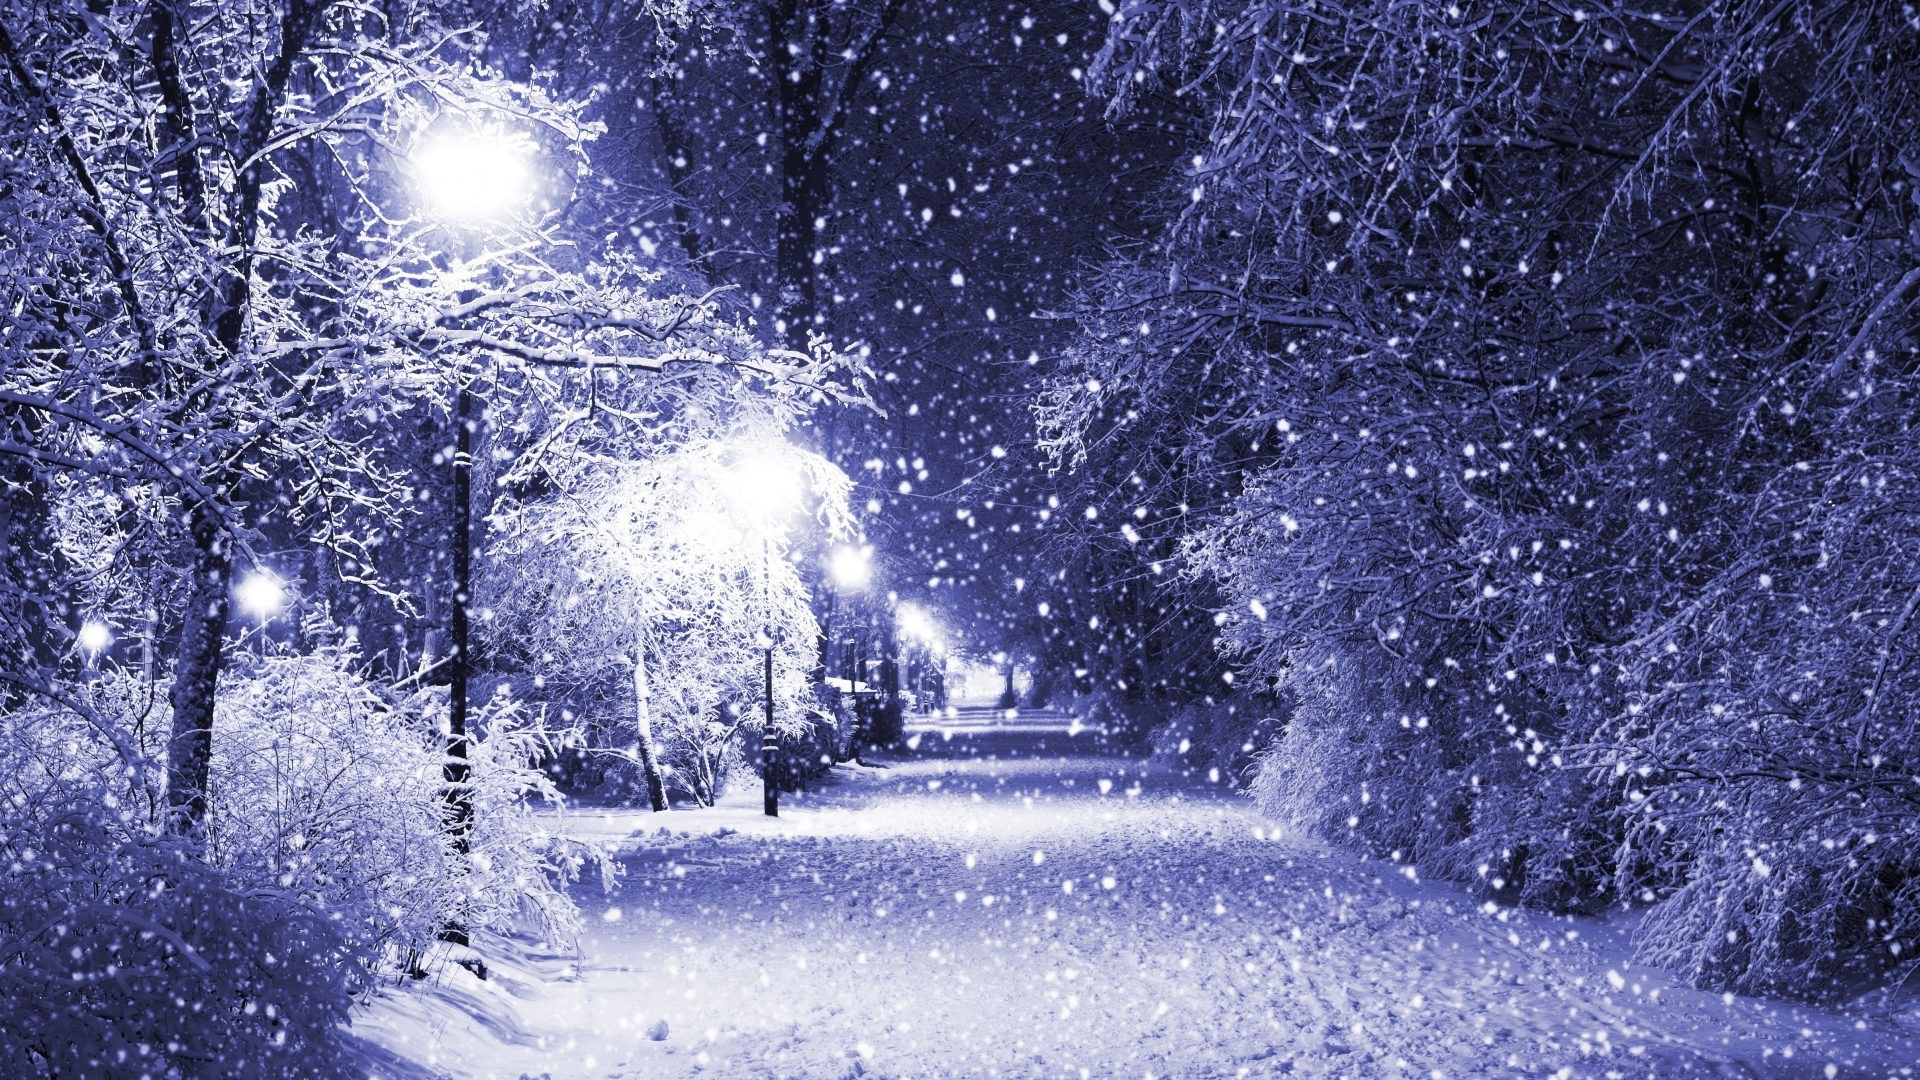 Merry Tag – Quiet Merry Snow Evening Christmas Eve Peaceful Night Park  Nature Lights White Forever